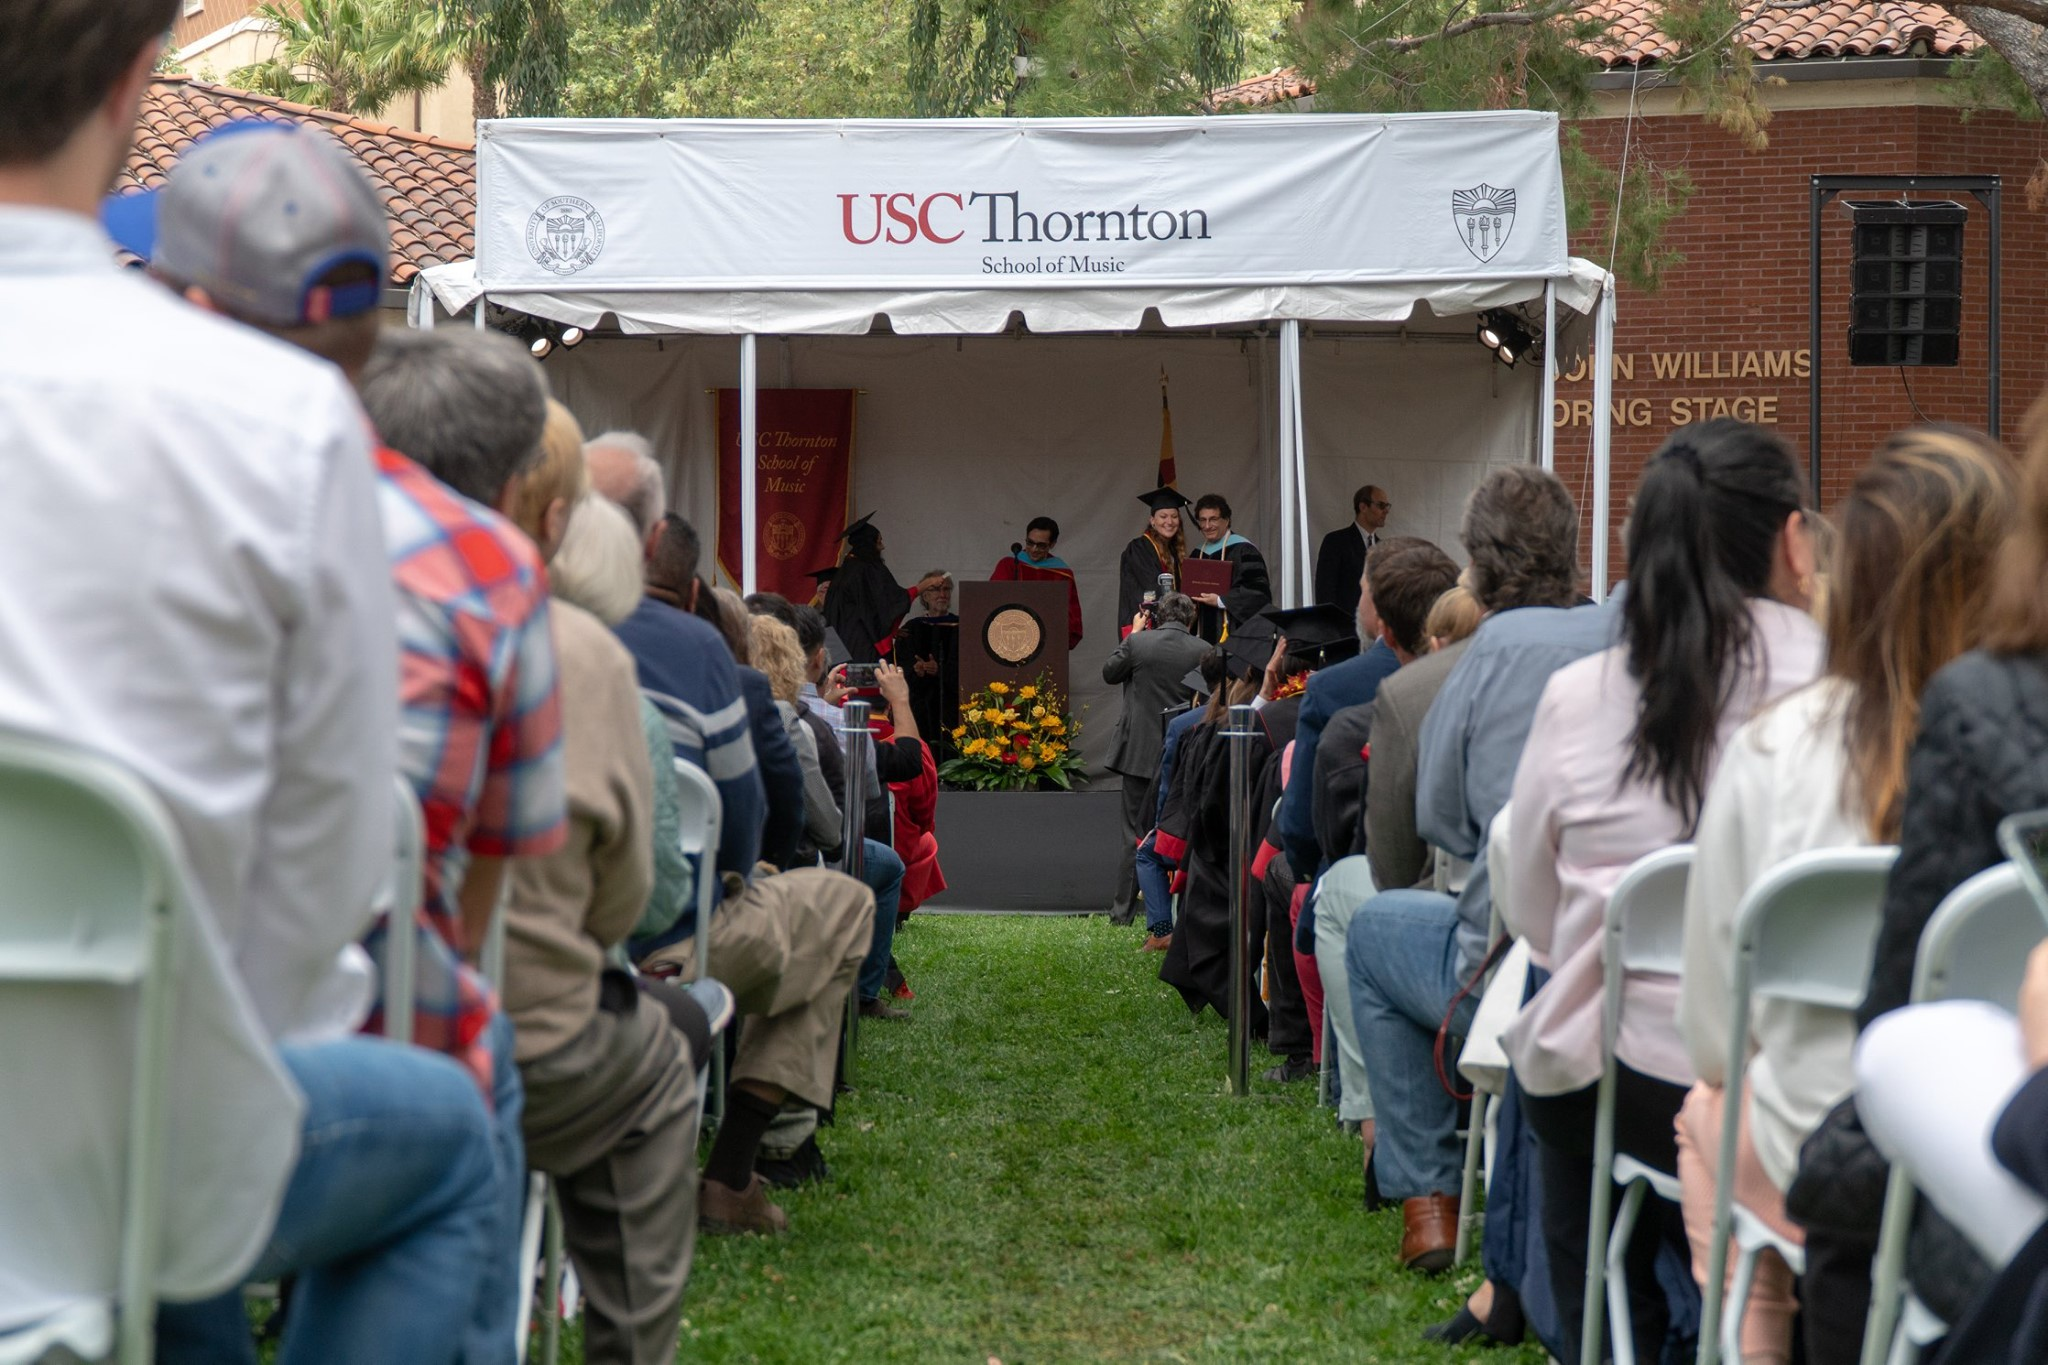 USC Thornton Graduation Ceremony - Friday, May 10, 2019